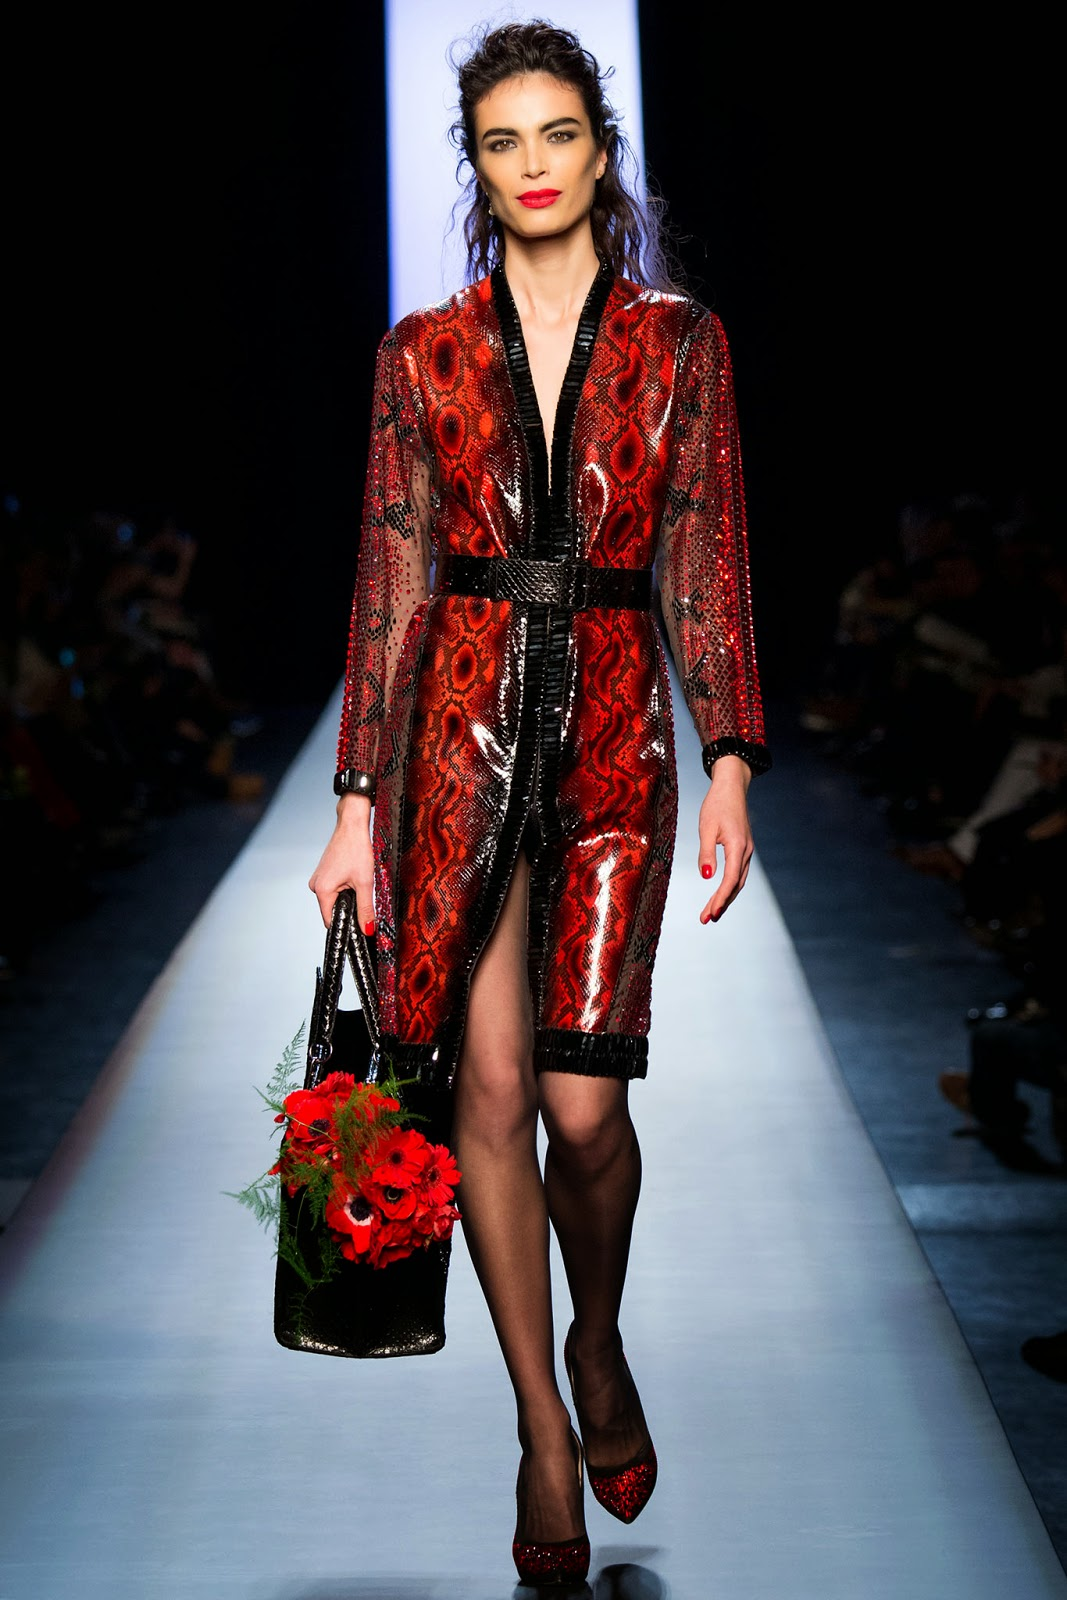 FASHION BY THE RULES Jean Paul Gaultier Haute Couture Spring 2015